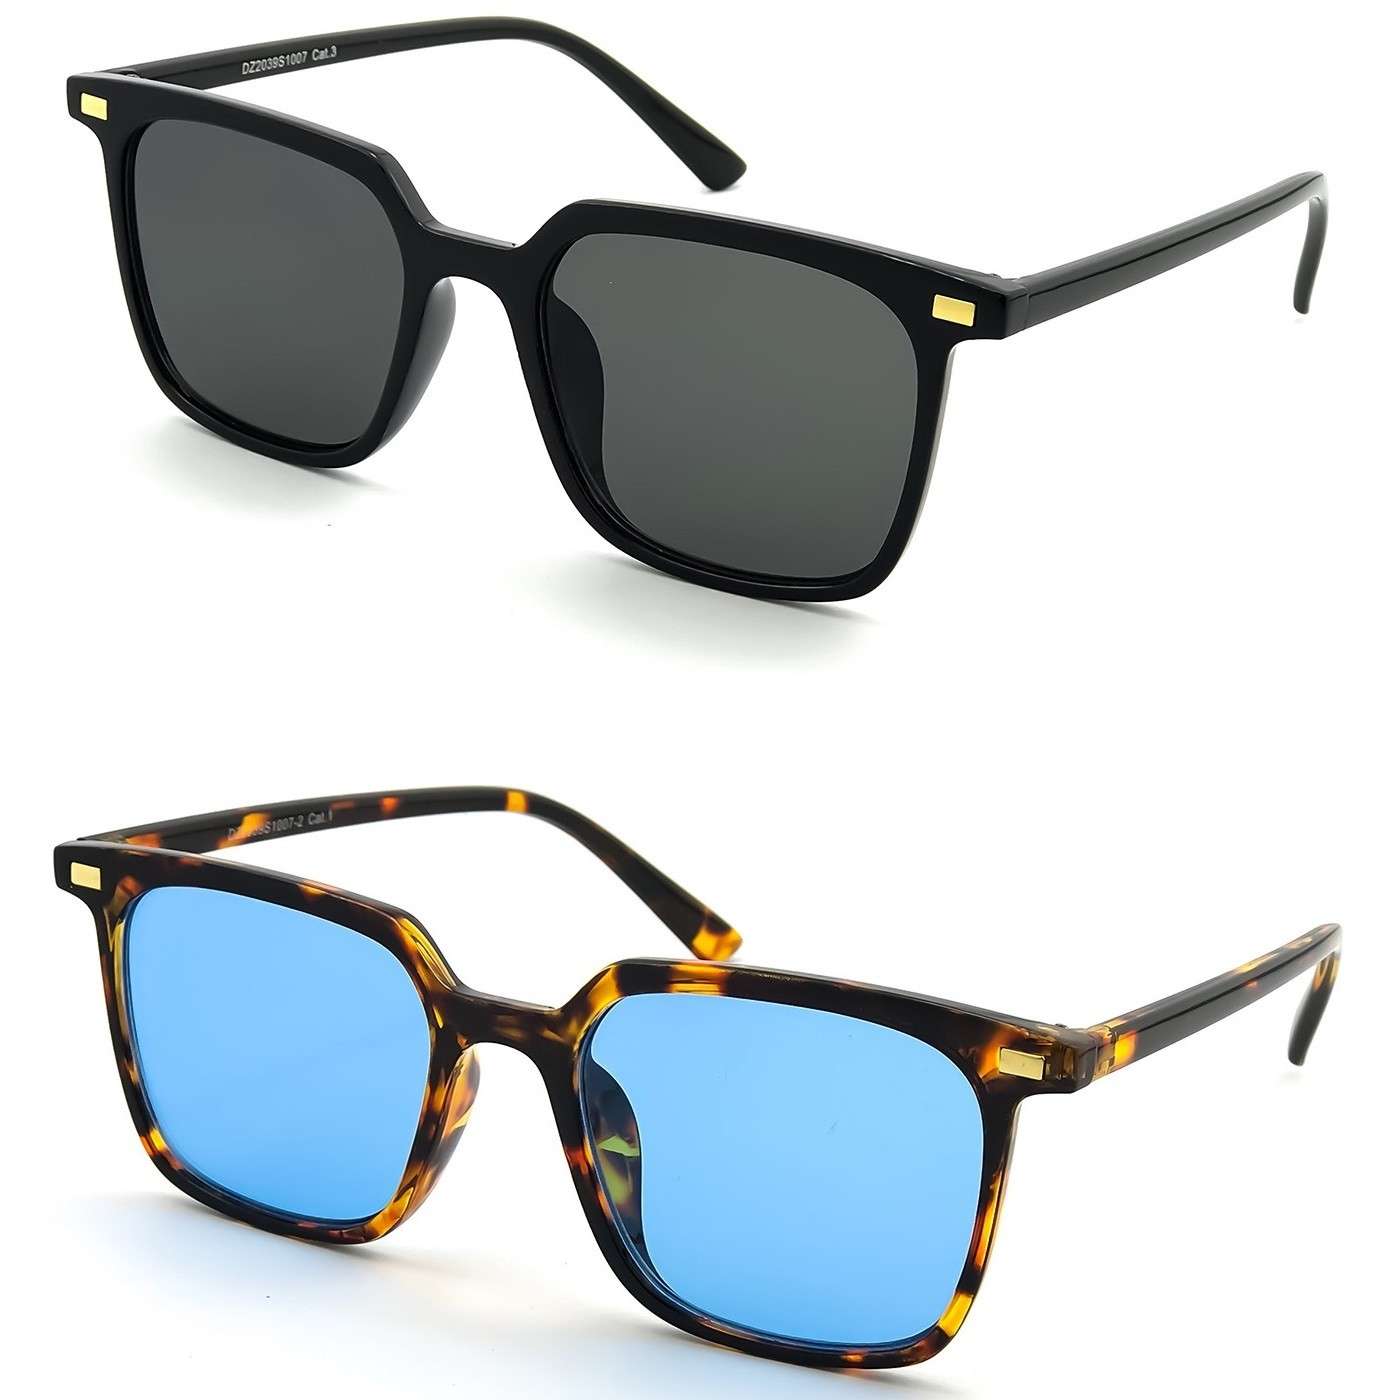 Sonnenbrille KISS® - Fashion mod. HALL - mann frau HIPSTER square iron man VINTAGE